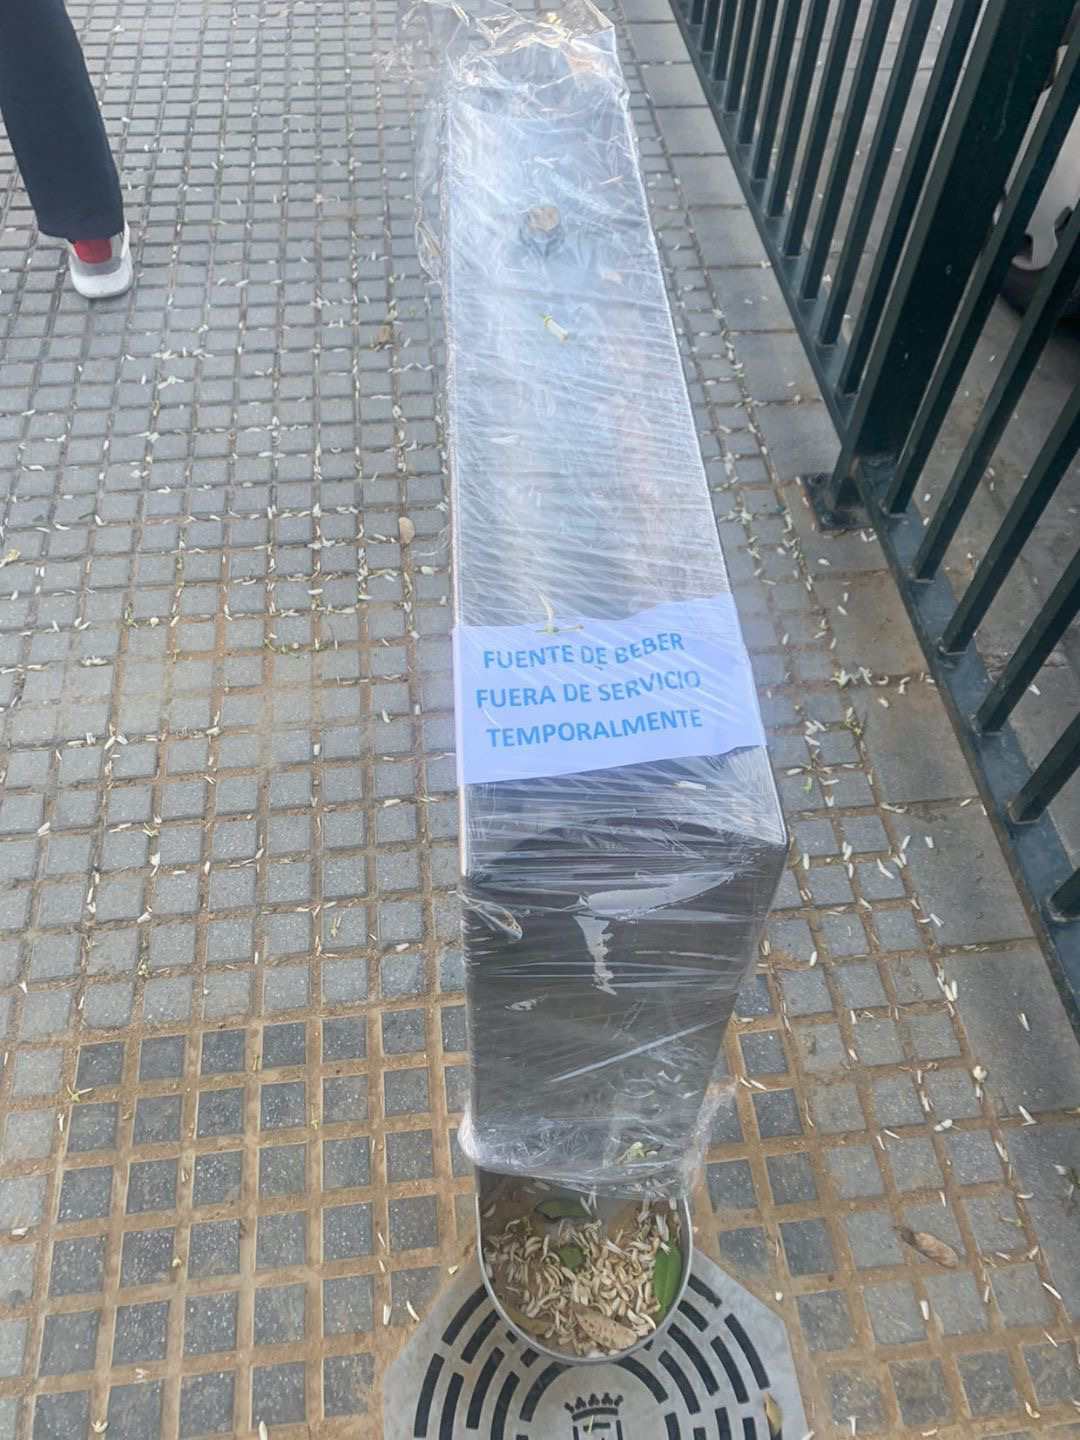 Water fountains in Spain taped off